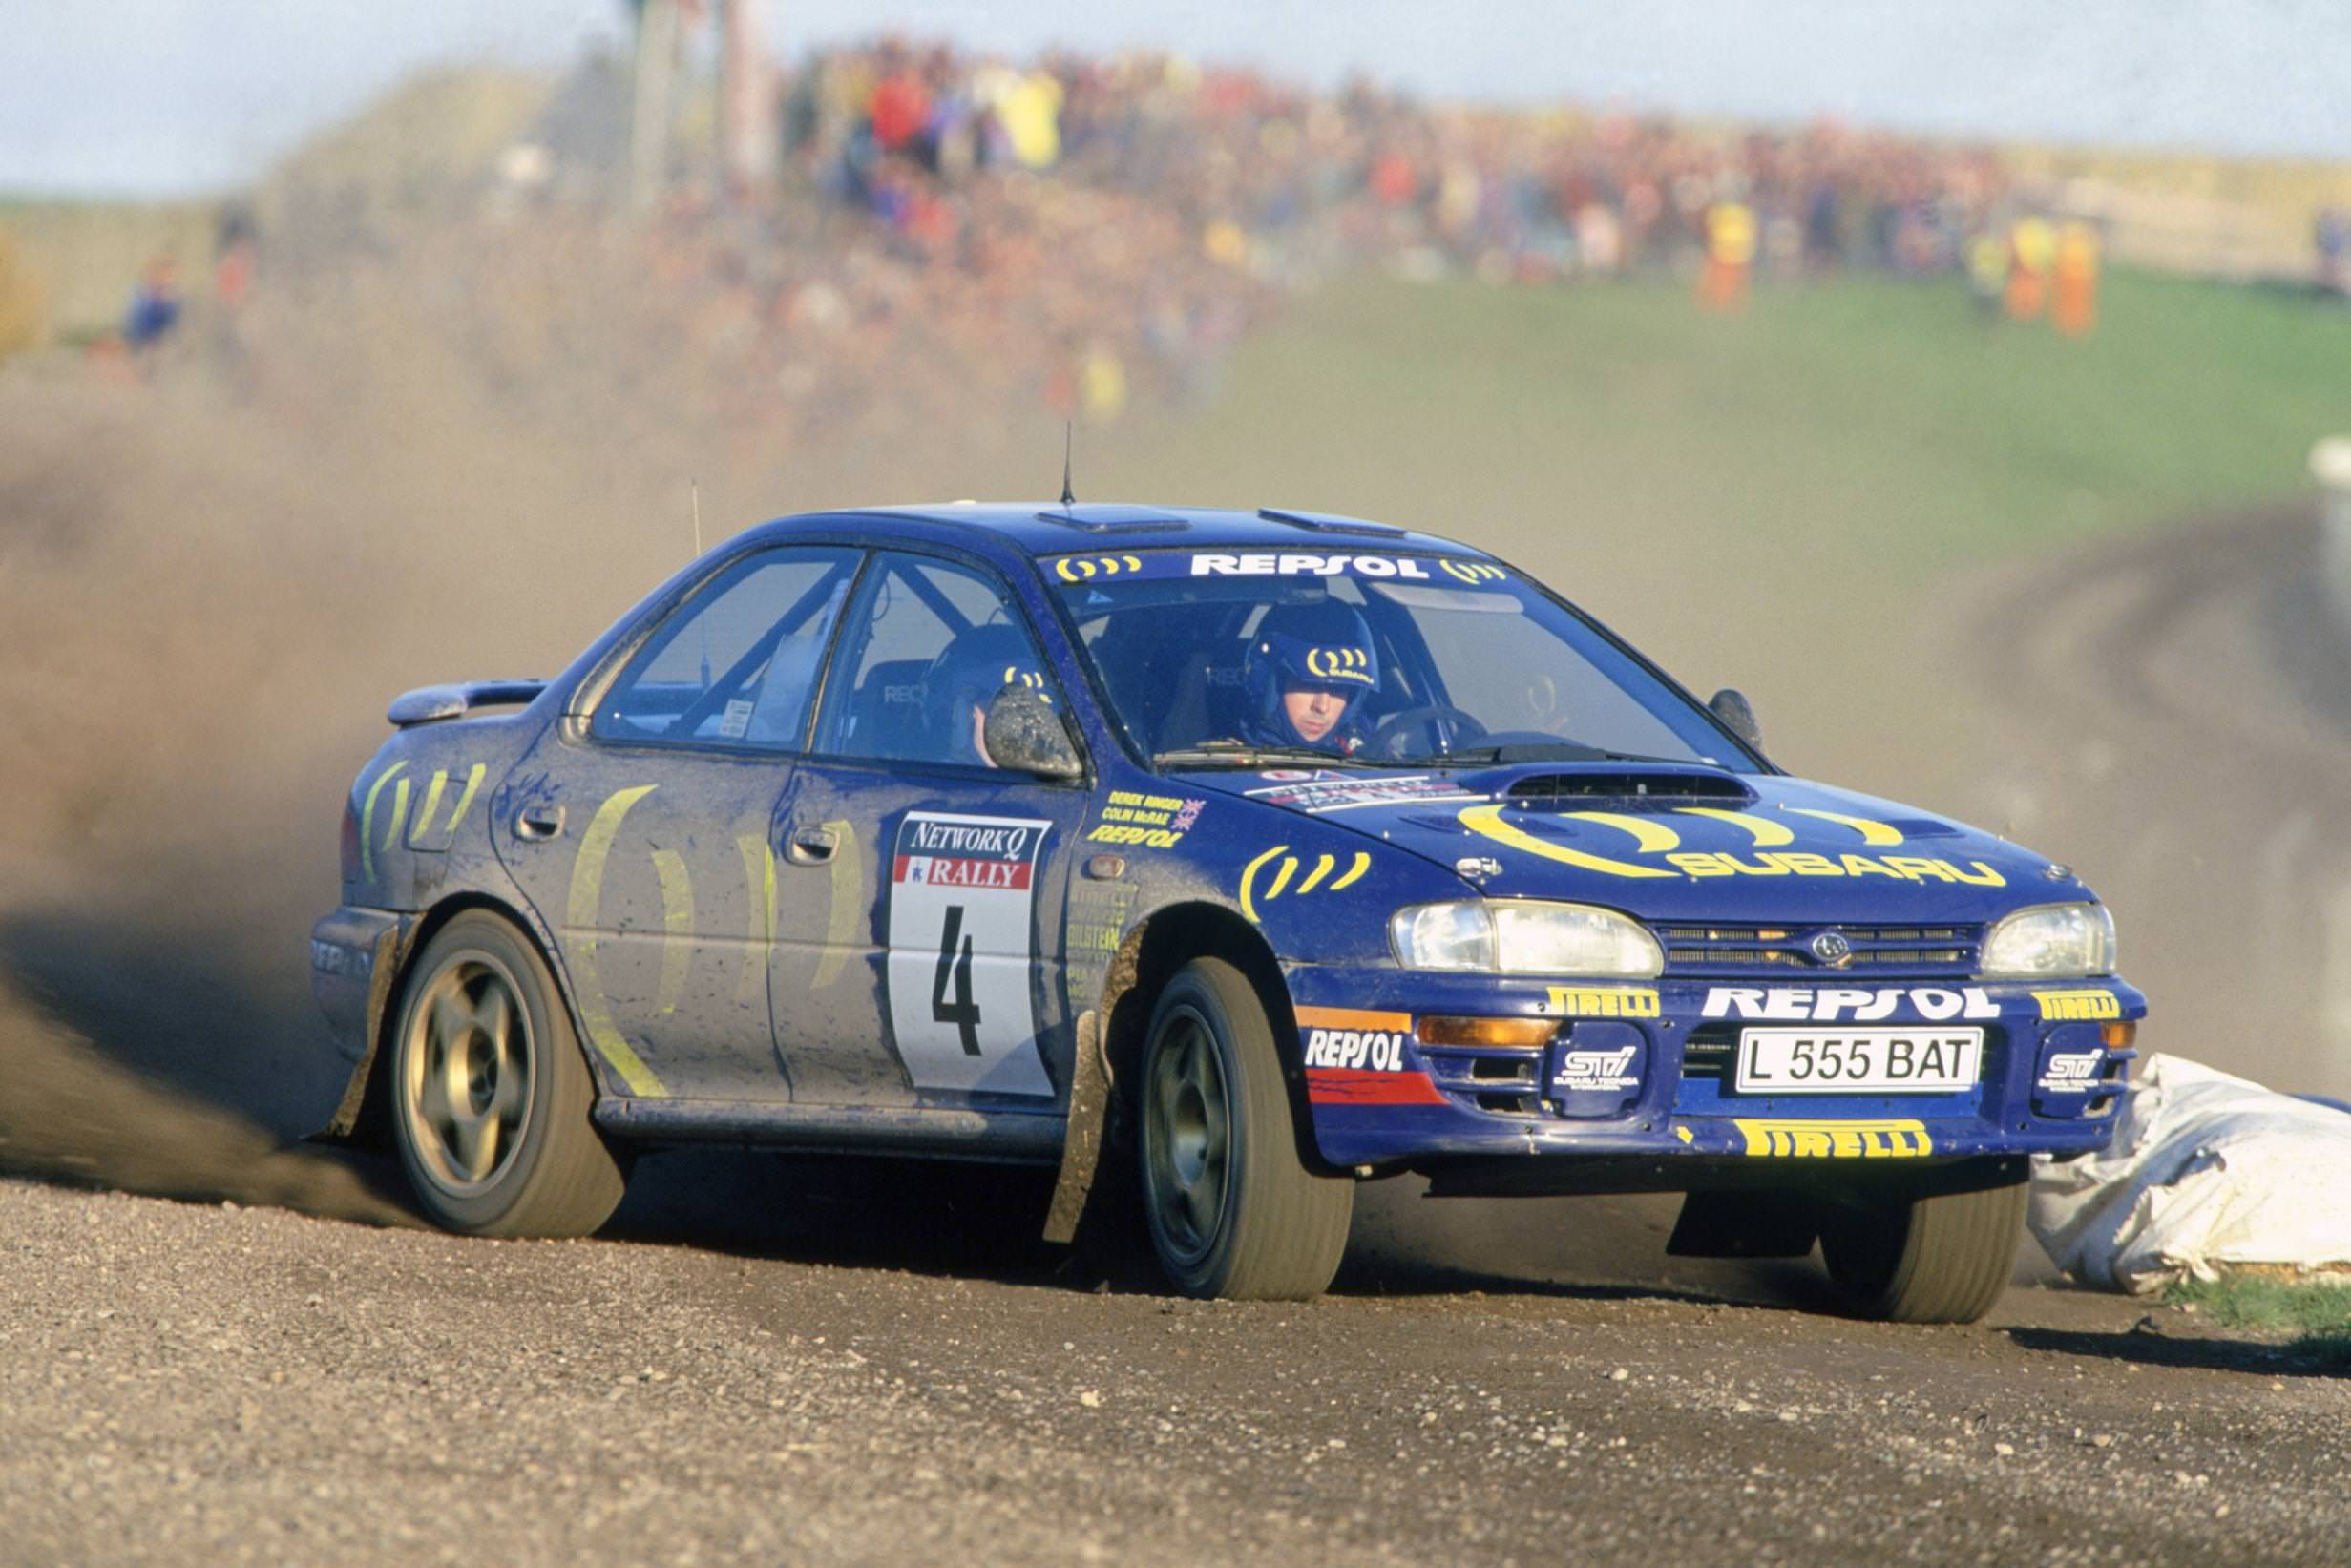 Chris Ingram's favourite past rally car was the Subaru Impreza